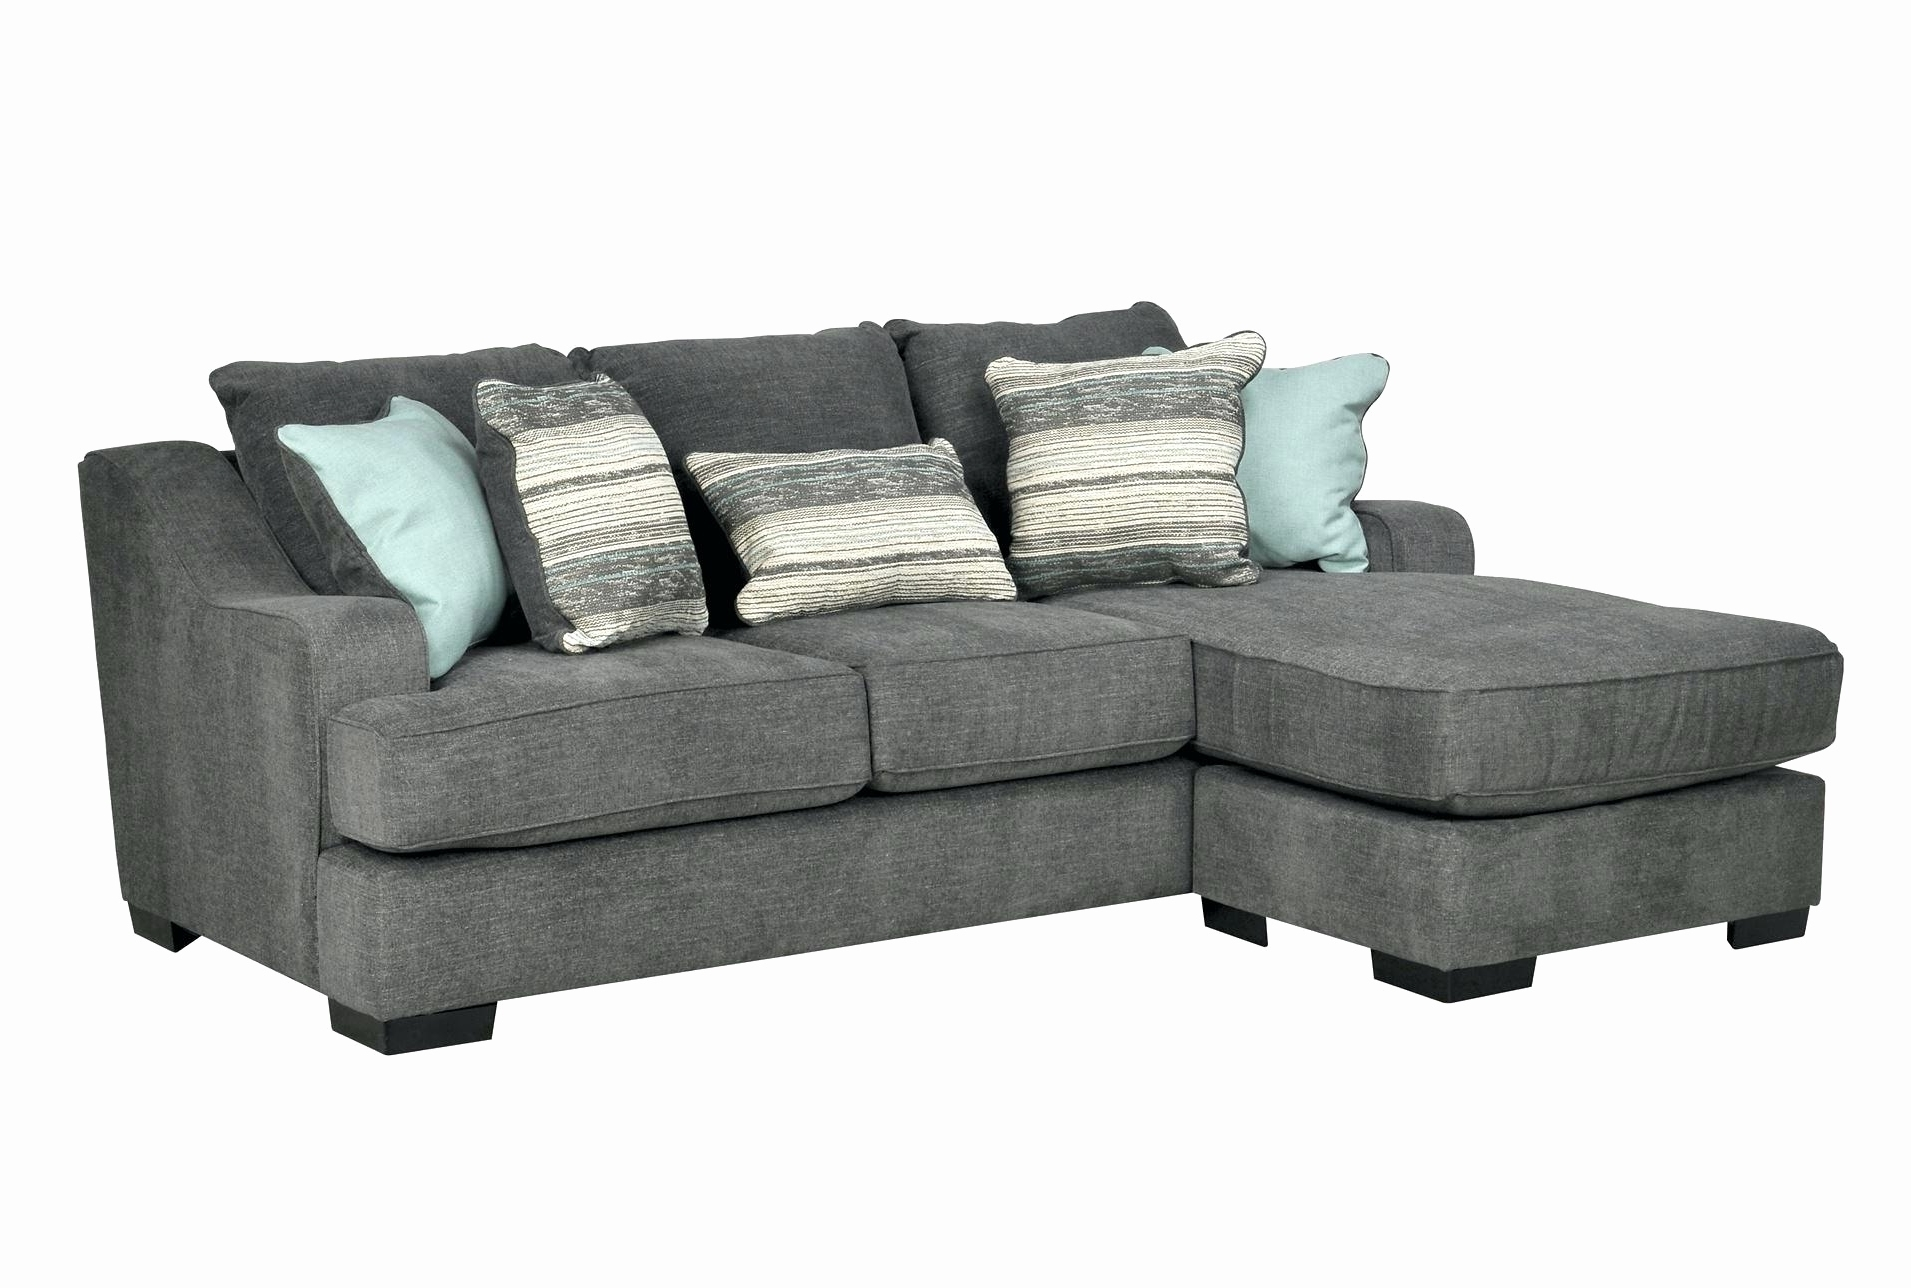 Fashionable Small Chaise Sofas Within Sofas : Corner Chaise Lounge Blue Chaise Lounge Double Chaise (View 4 of 15)